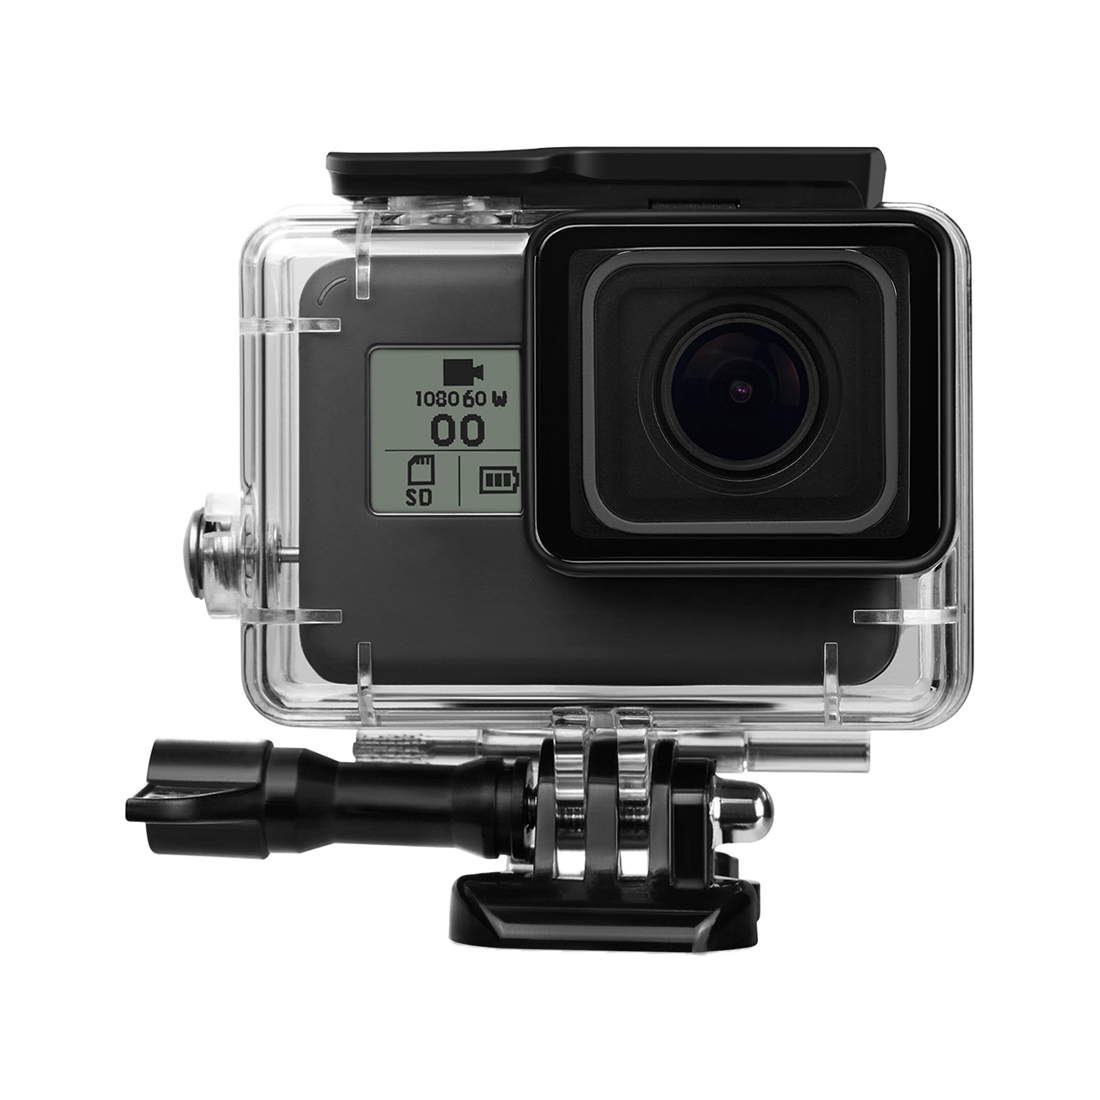 45M Underwater Waterproof Protective Housing Case with Quick Release Mount and Thumbscrew for GoPro HERO 5 Action Camcorder gopro hero 5 dome port 6 gopro lens dome port cover underwater housing case for gopro hero 5 shoot